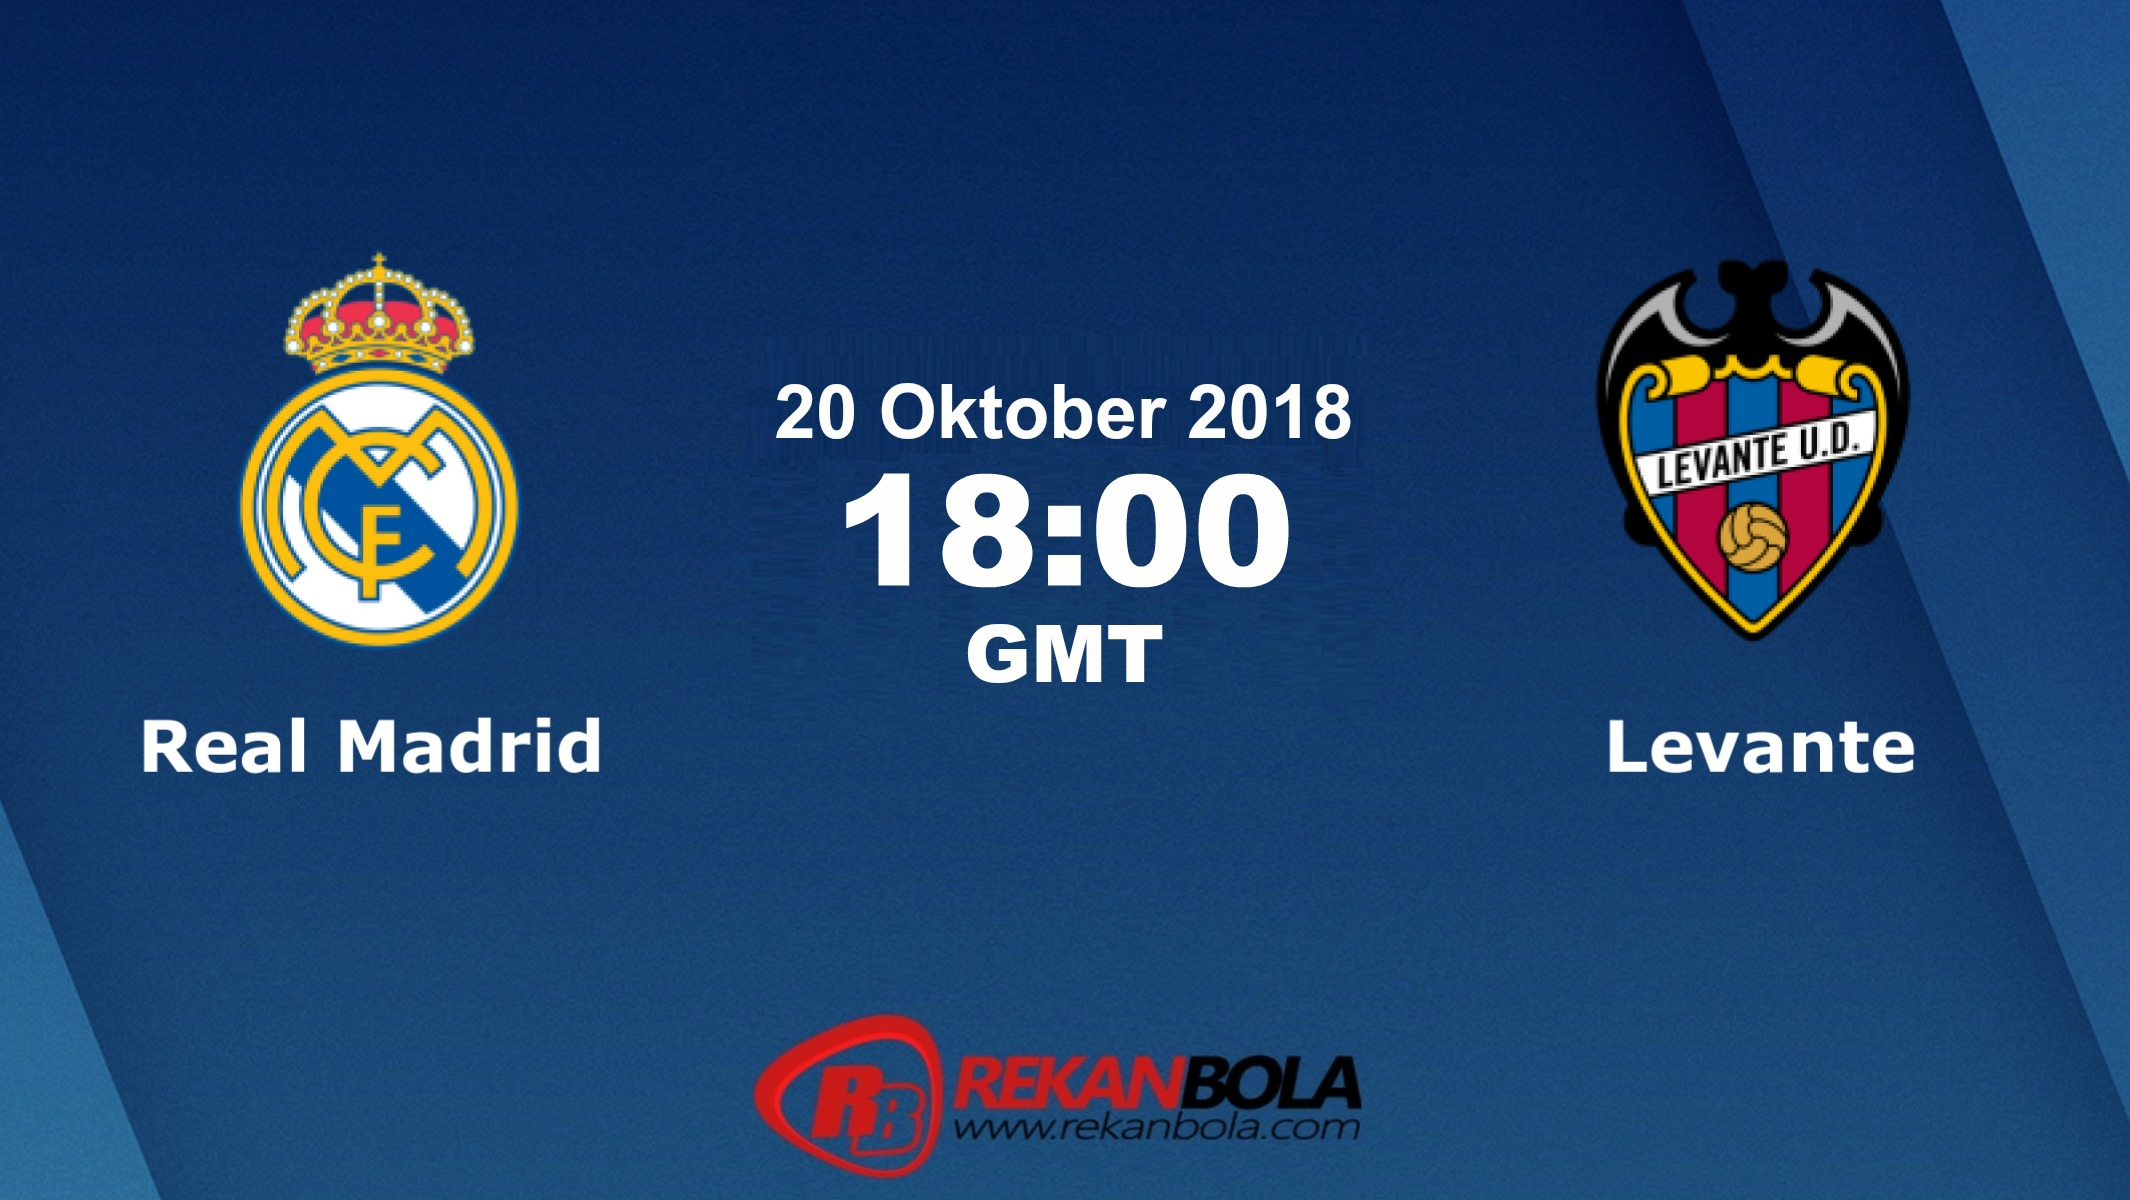 Nonton Siaran Live Streaming Madrid Vs Levante 20 Oktober 2018